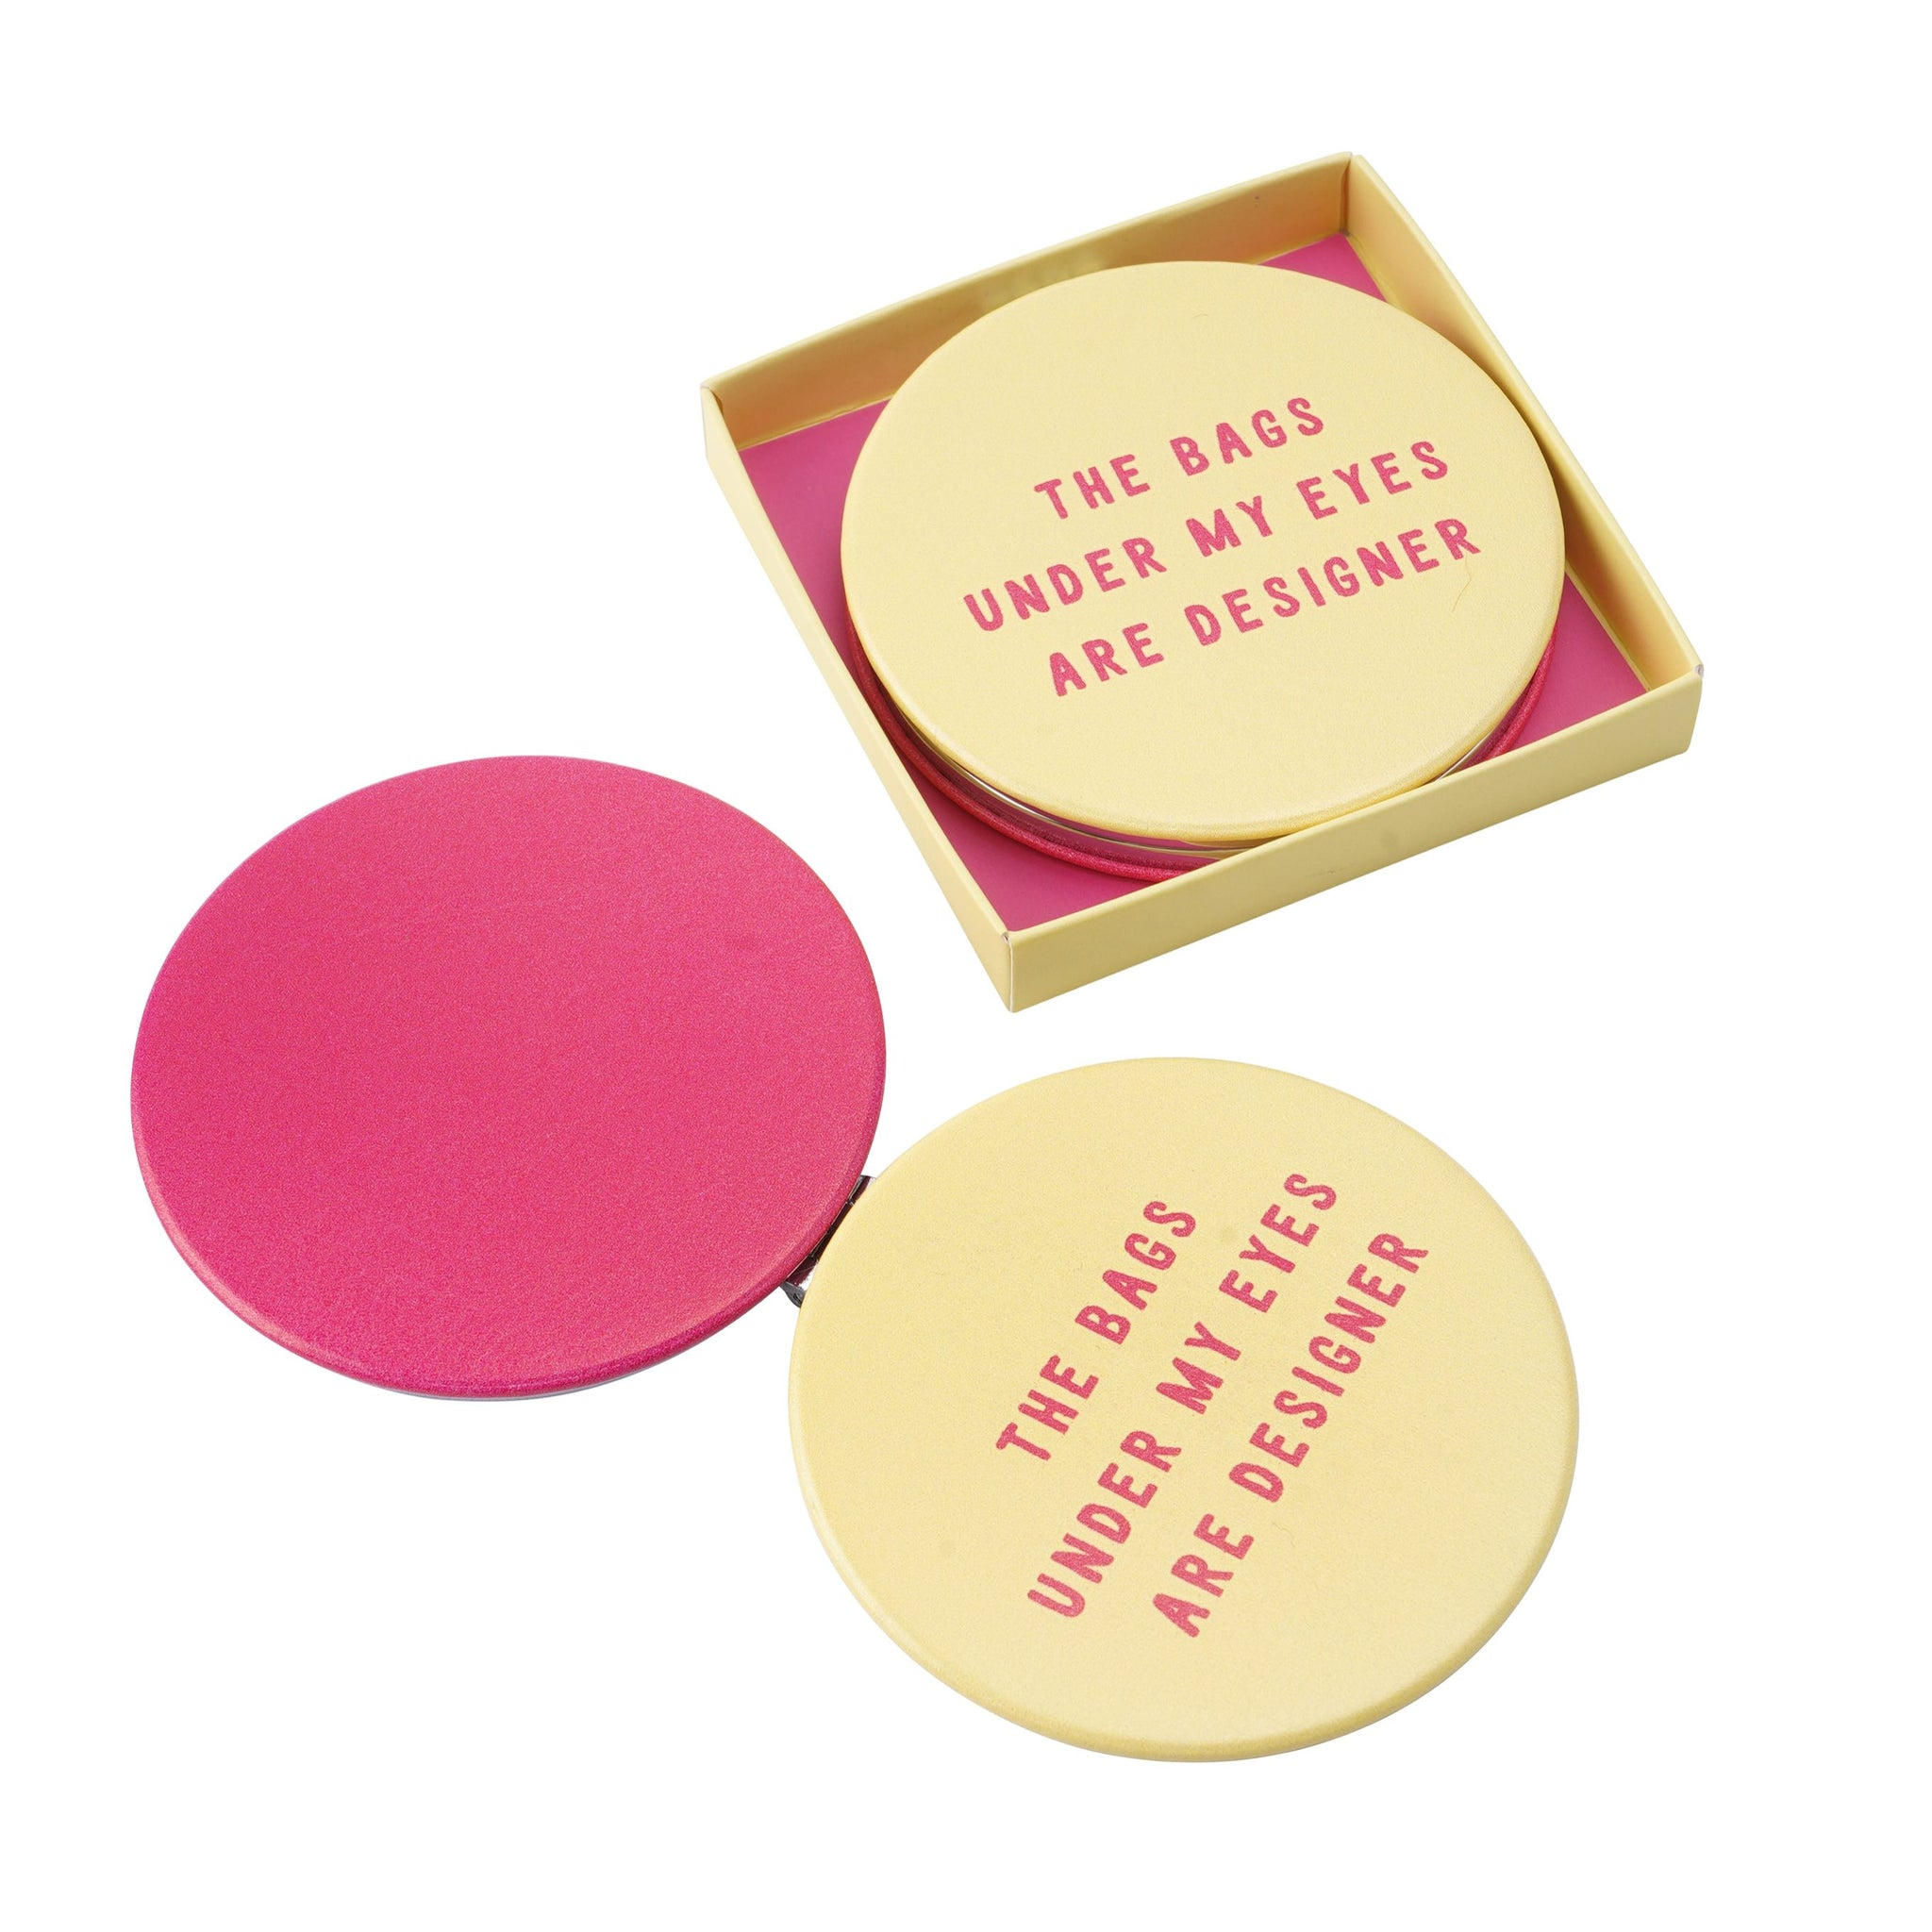 Yellow and pink compact mirror, with the fun slogan The bags under my eyes are designer.